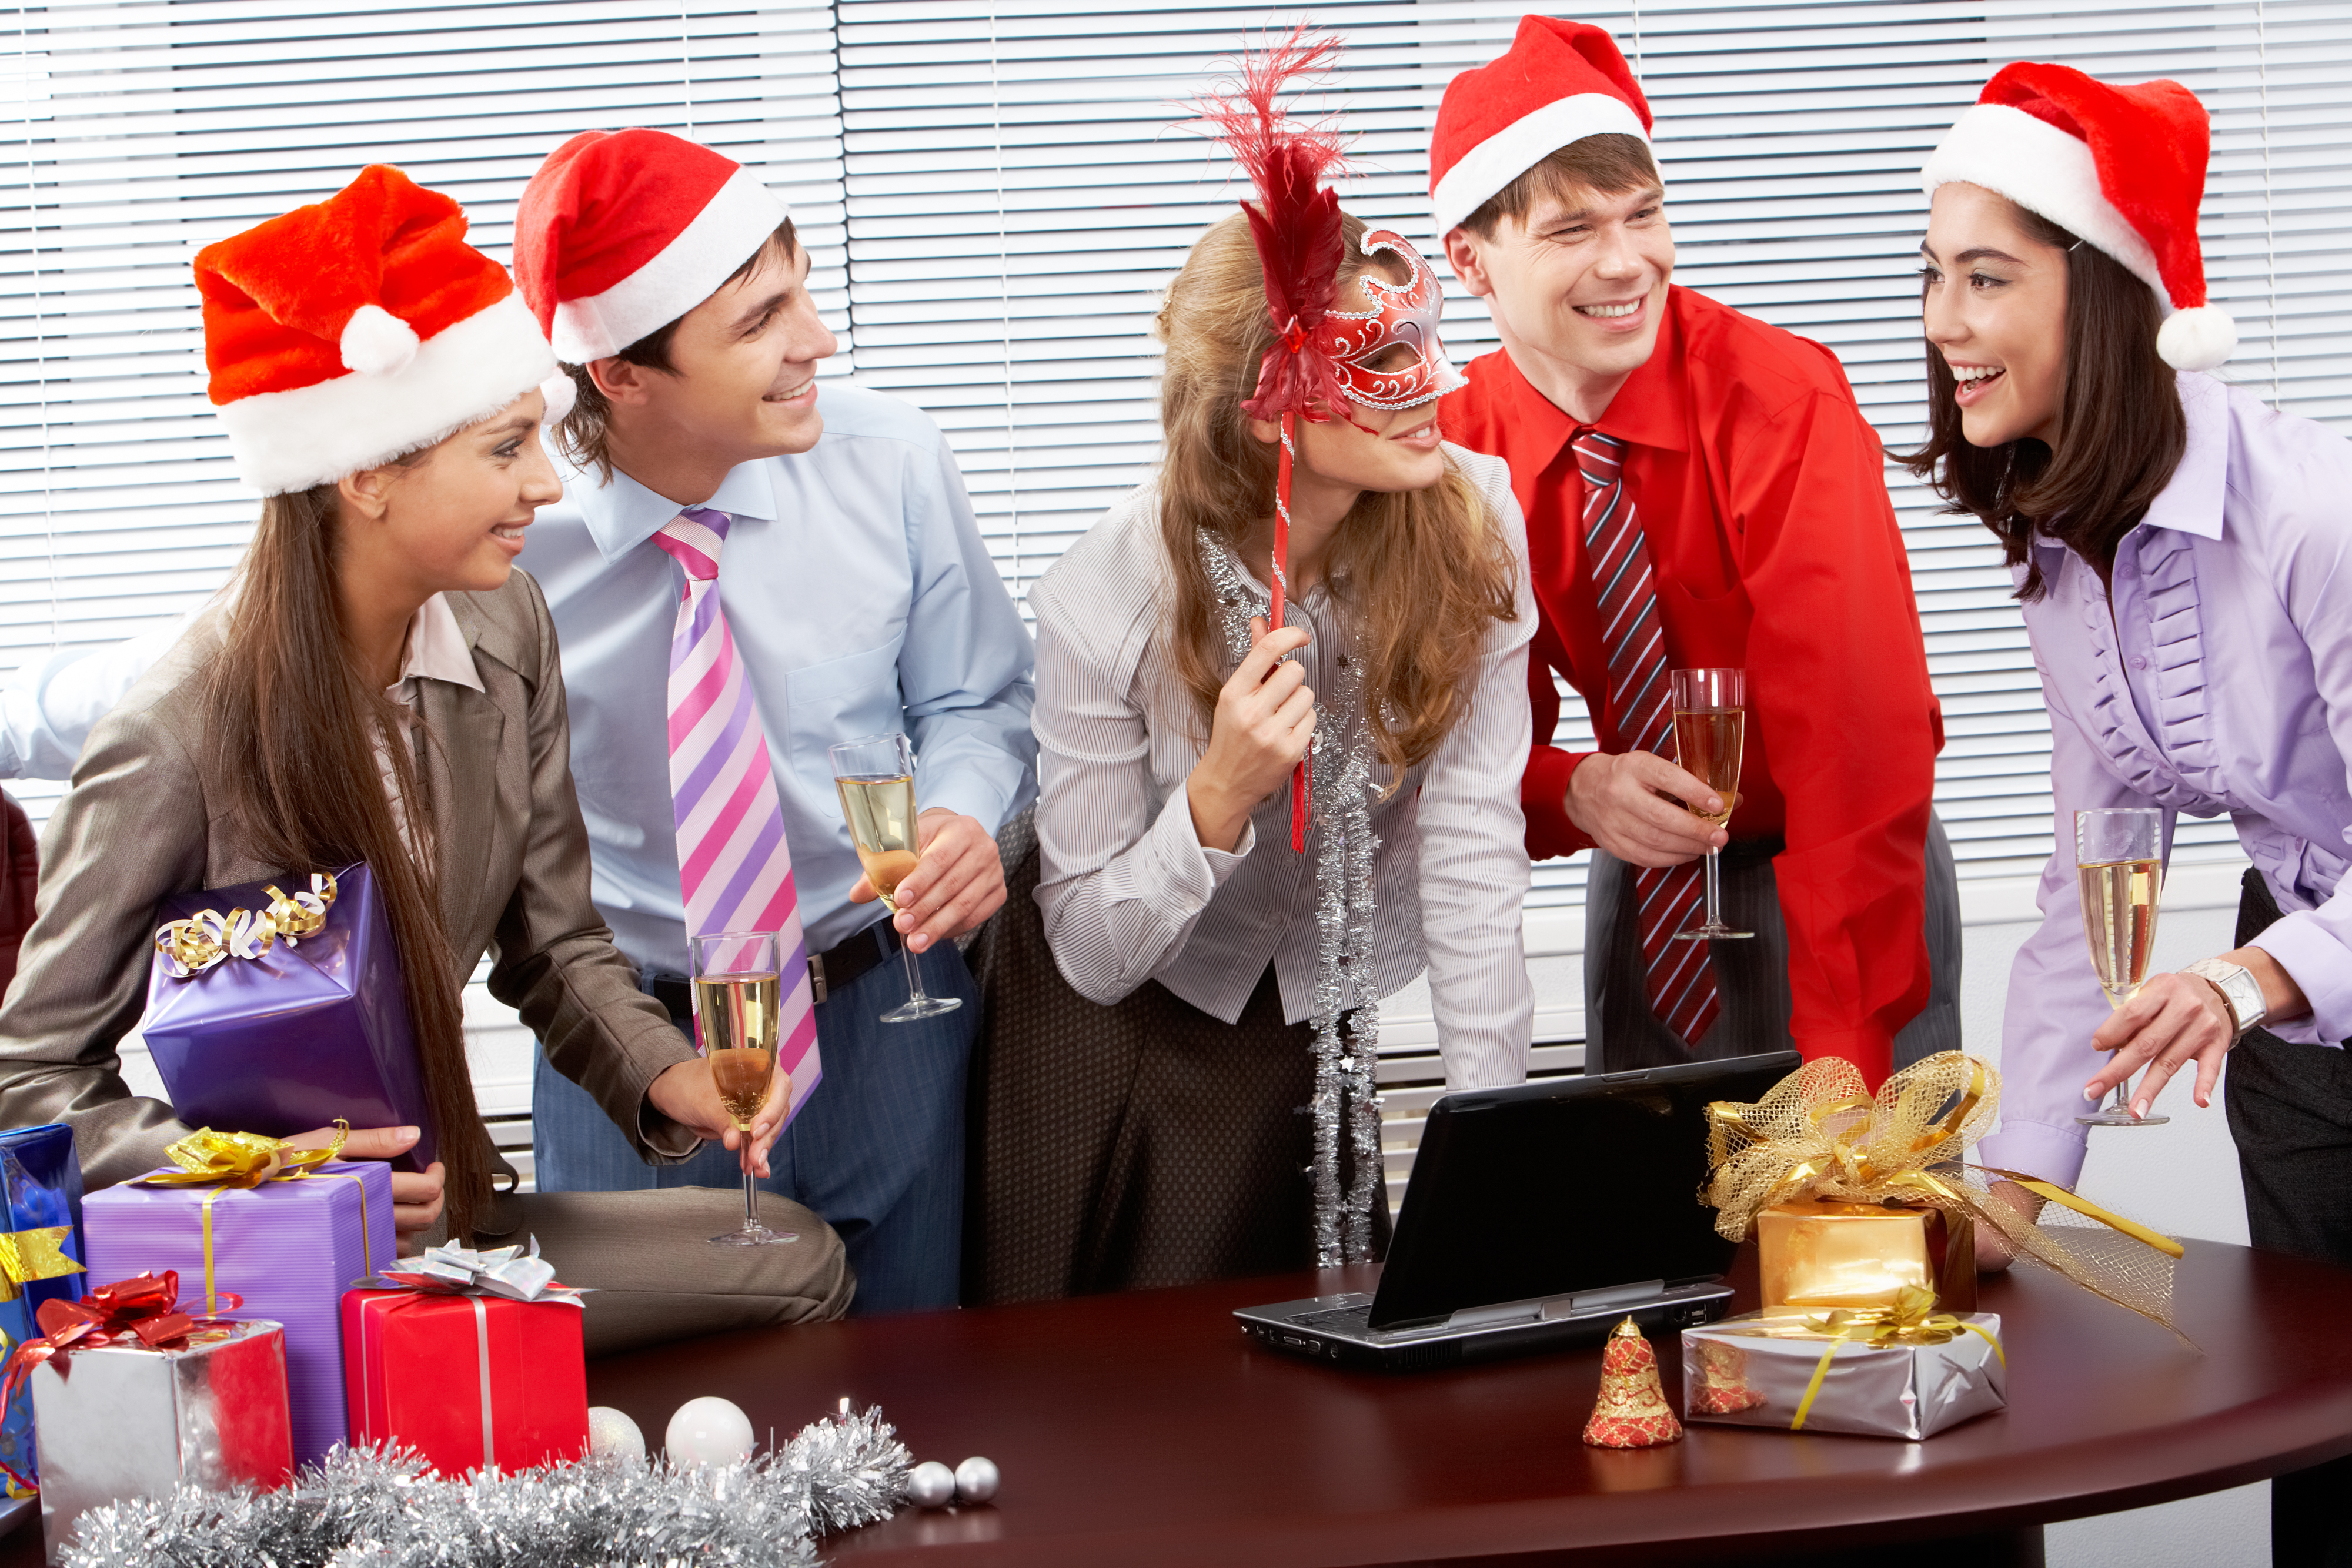 20 Fun Christmas Party Games For Work - Christmas Celebration - All ...